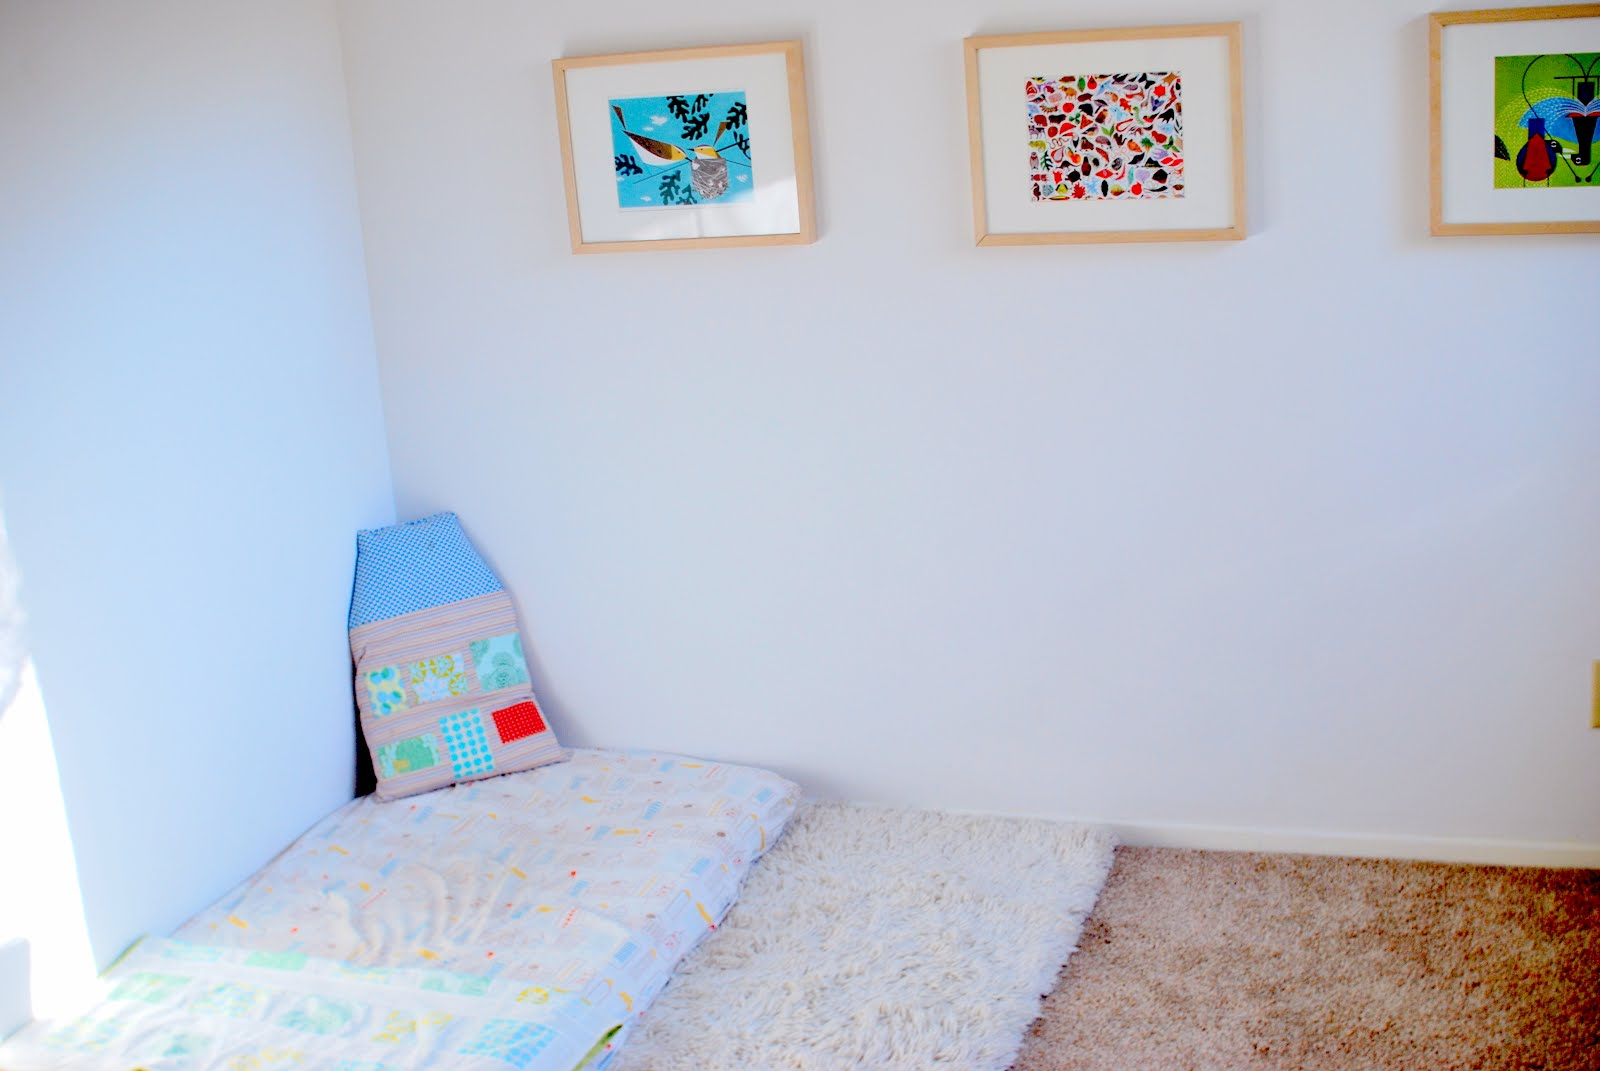 Feeding the soil montessori bedroom for a one year old for Bedroom ideas for 3 beds